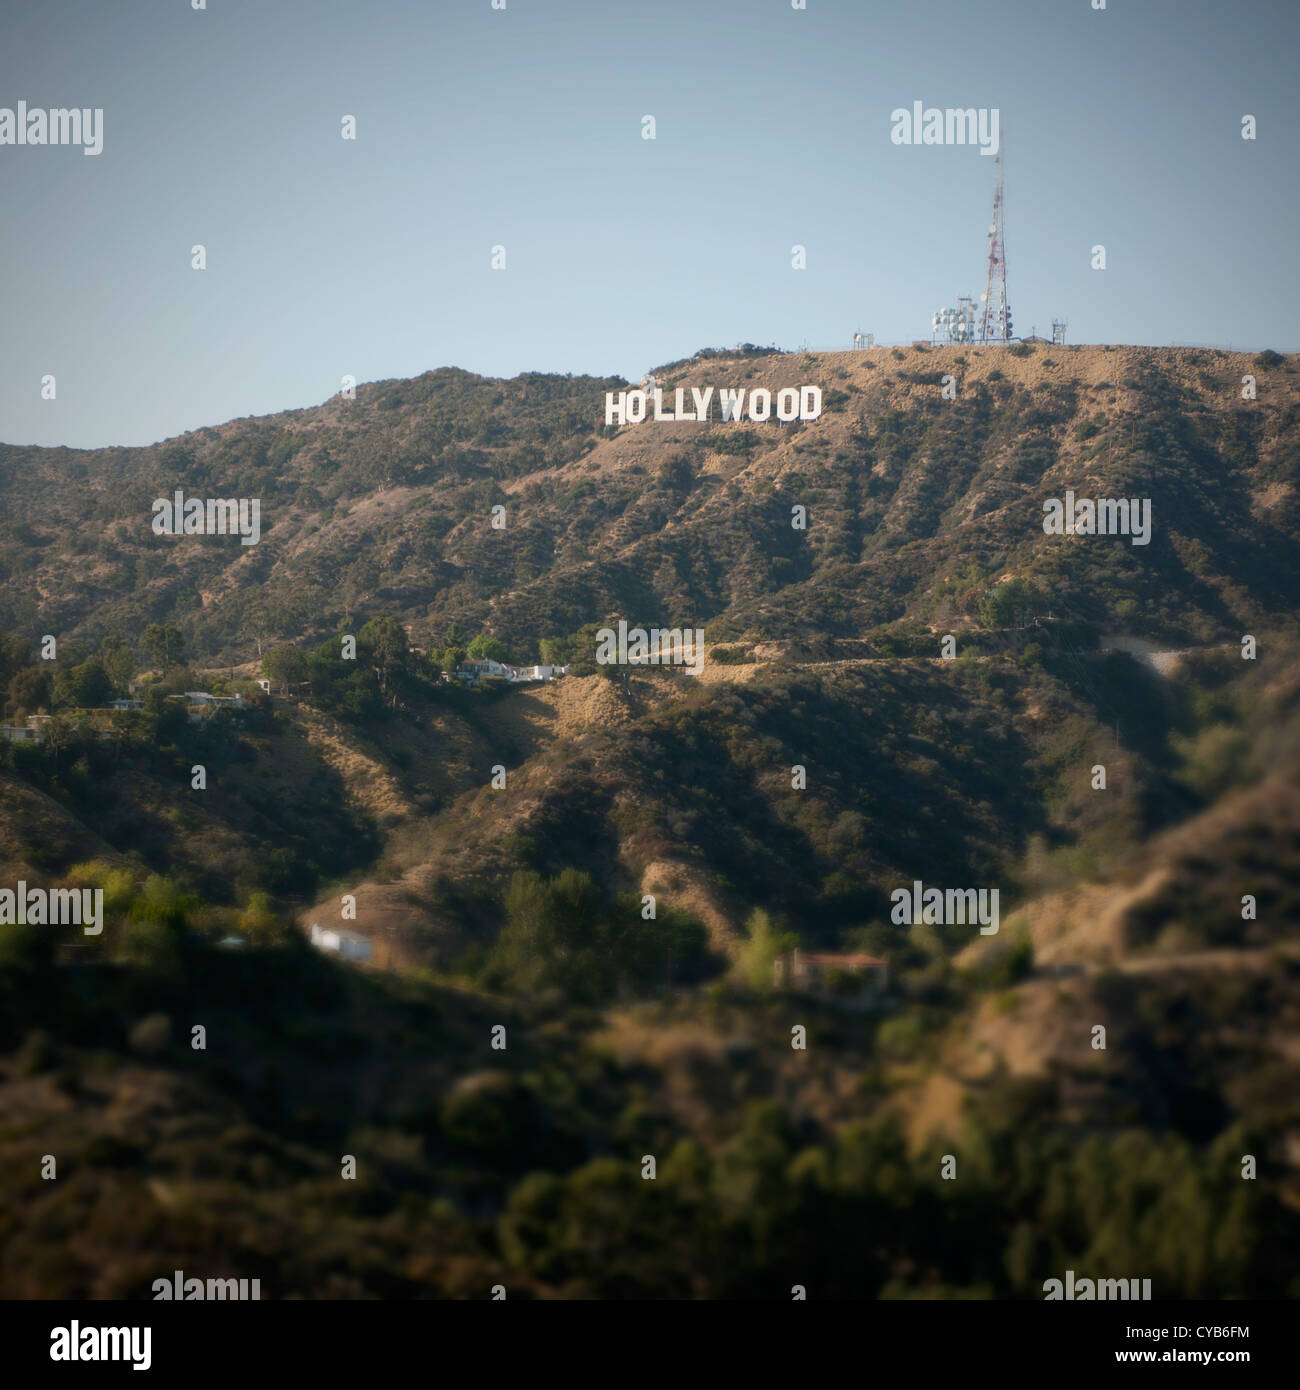 Hollywood sign, Los Angeles, California, USA - Stock Image